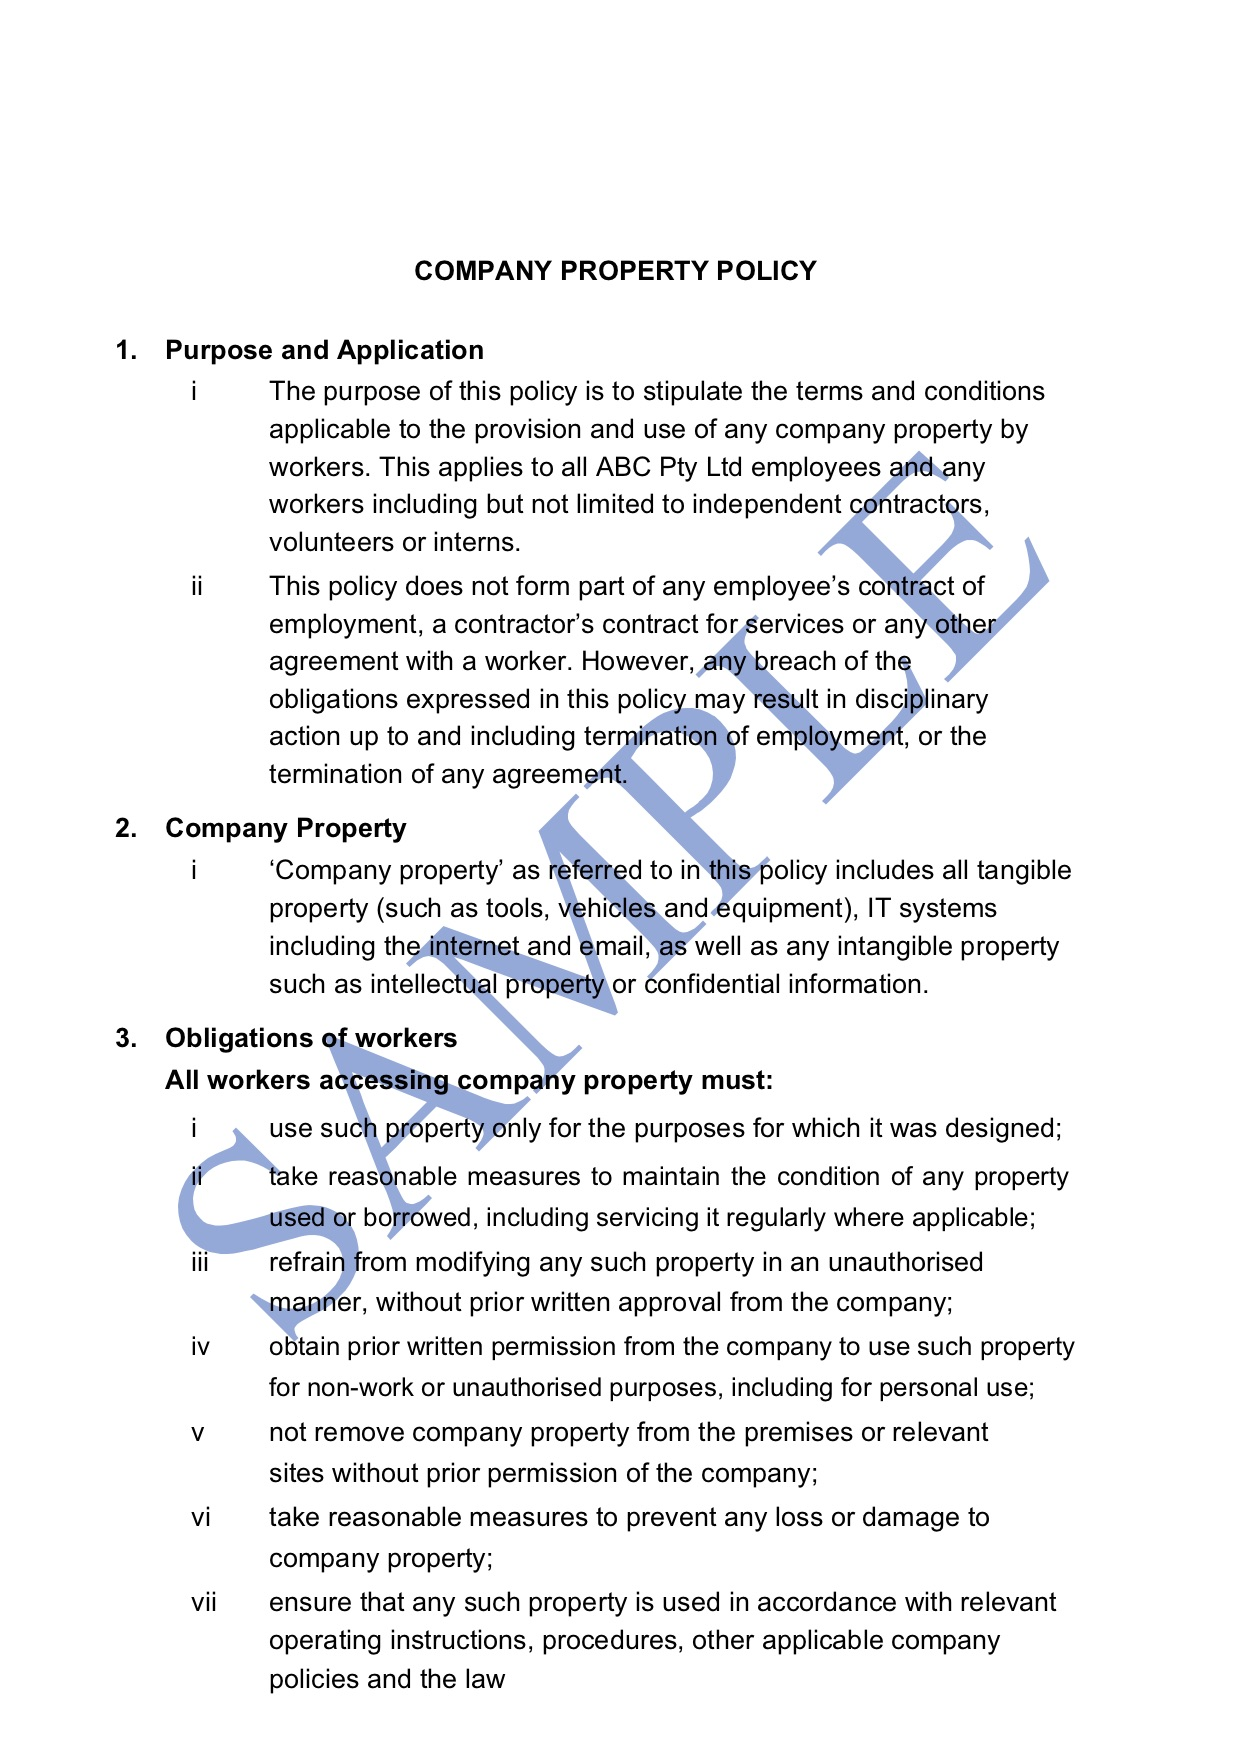 Use of Company Property Policy